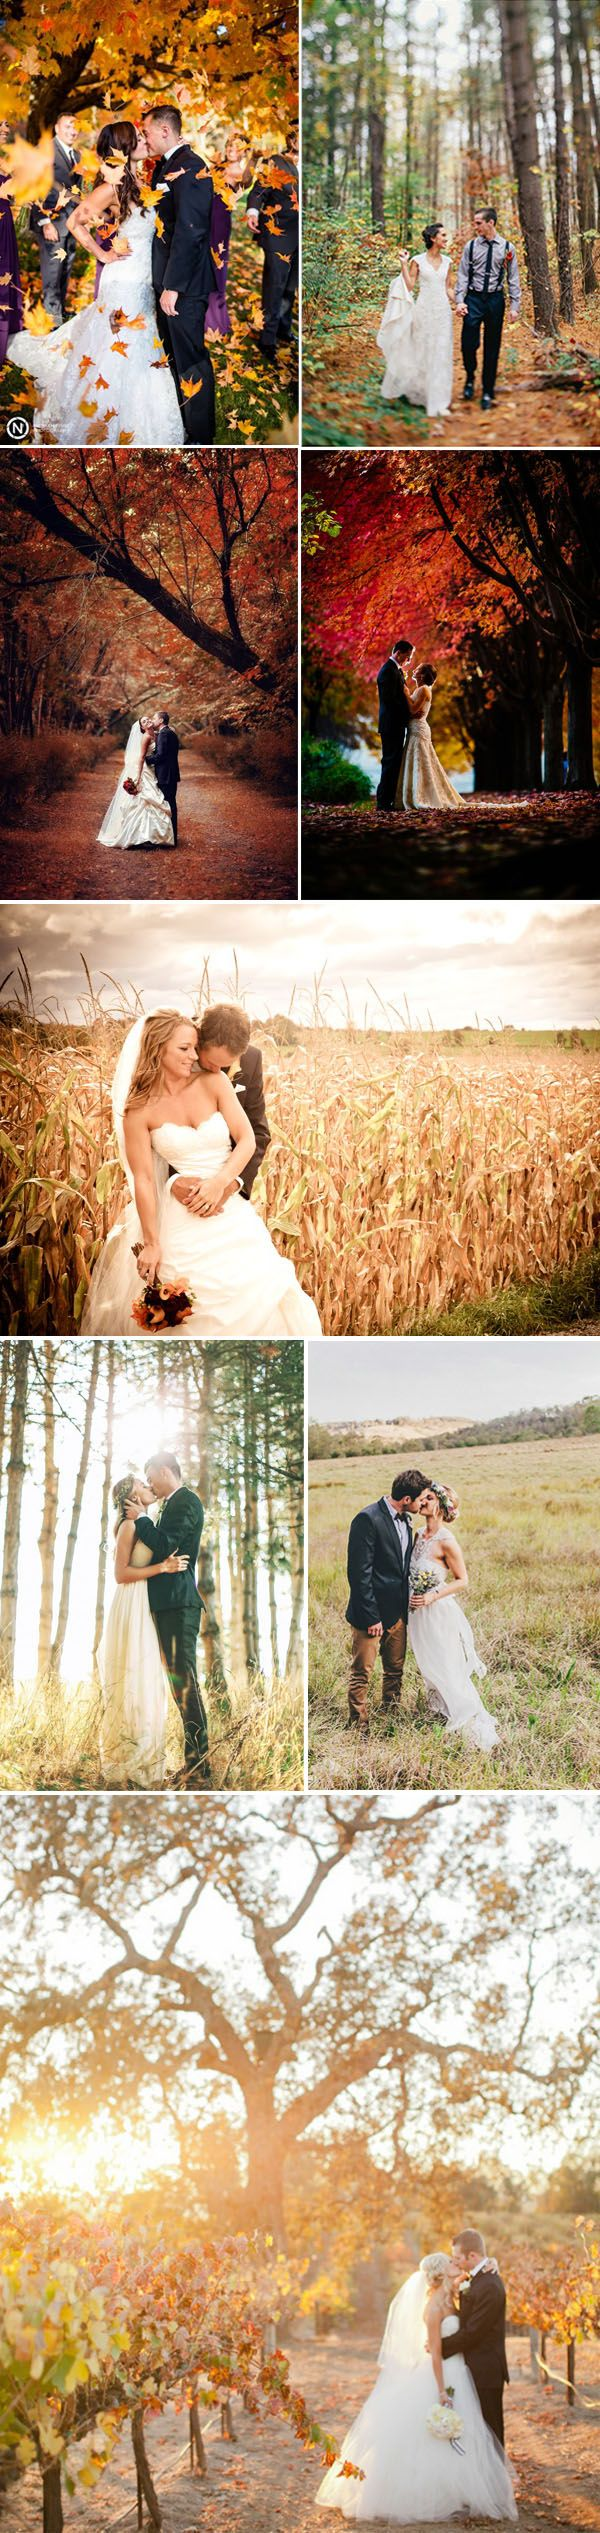 a fall wedding in Saratoga would be gorgeous - autumn season wedding photo ideas